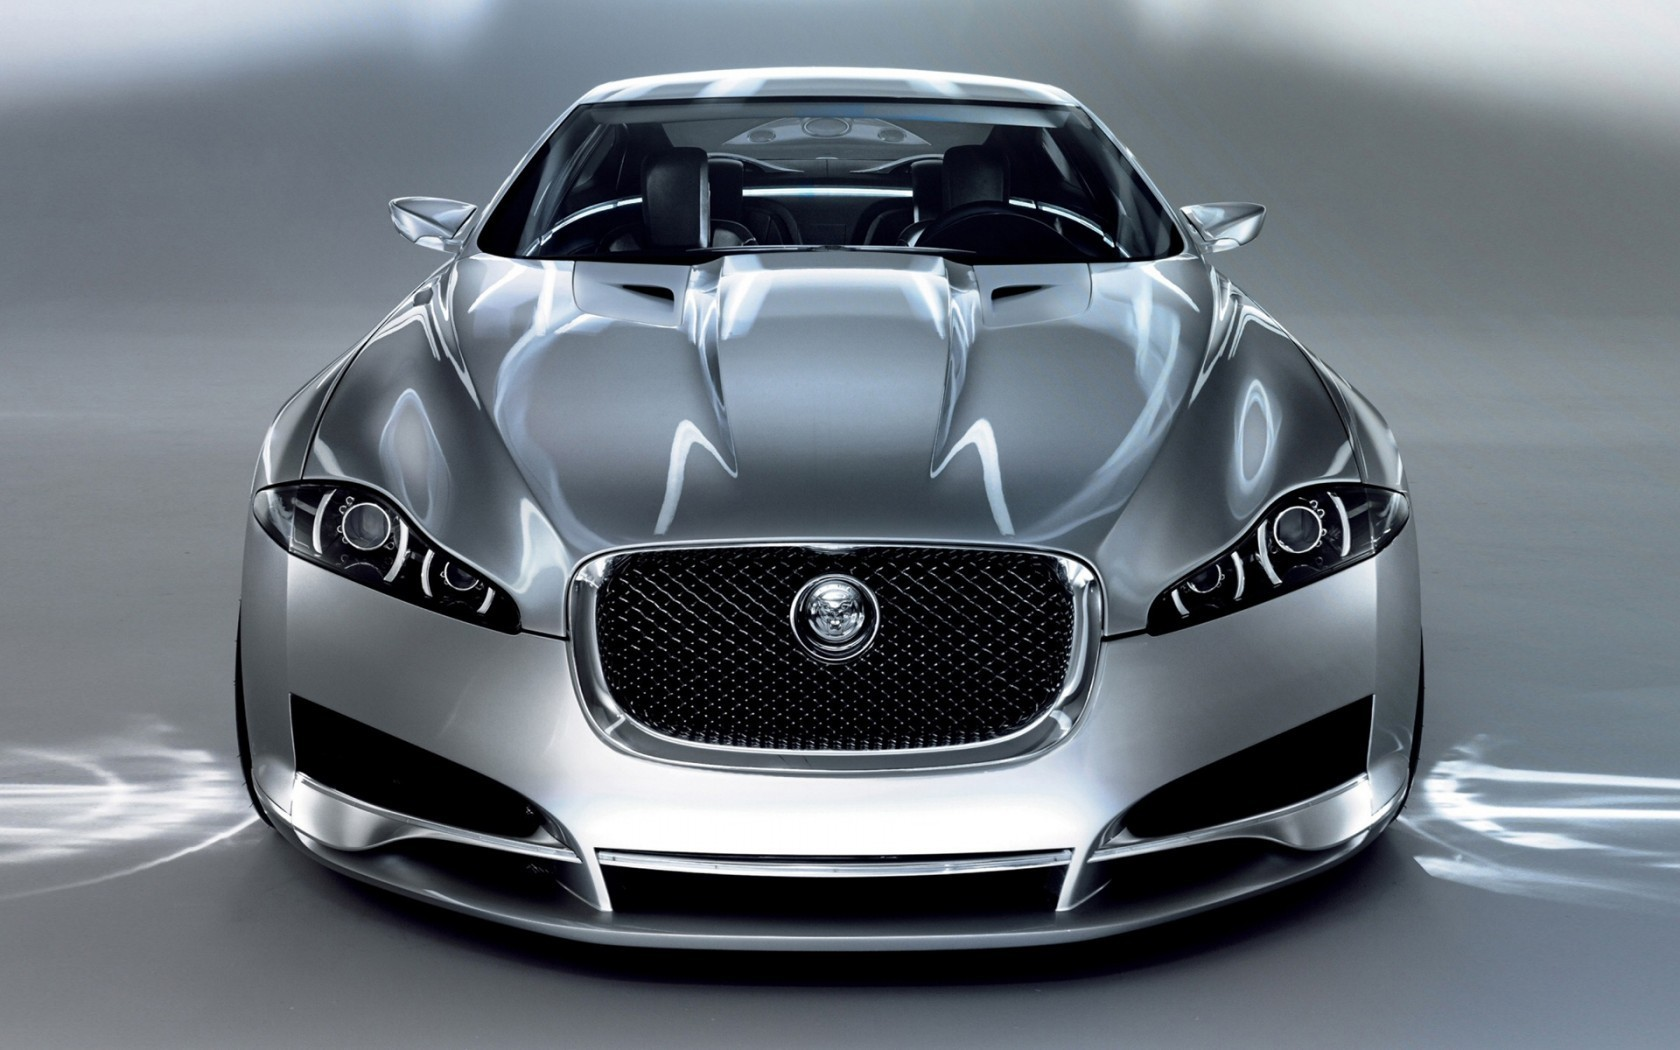 jaguar concept art concept HD Wallpaper